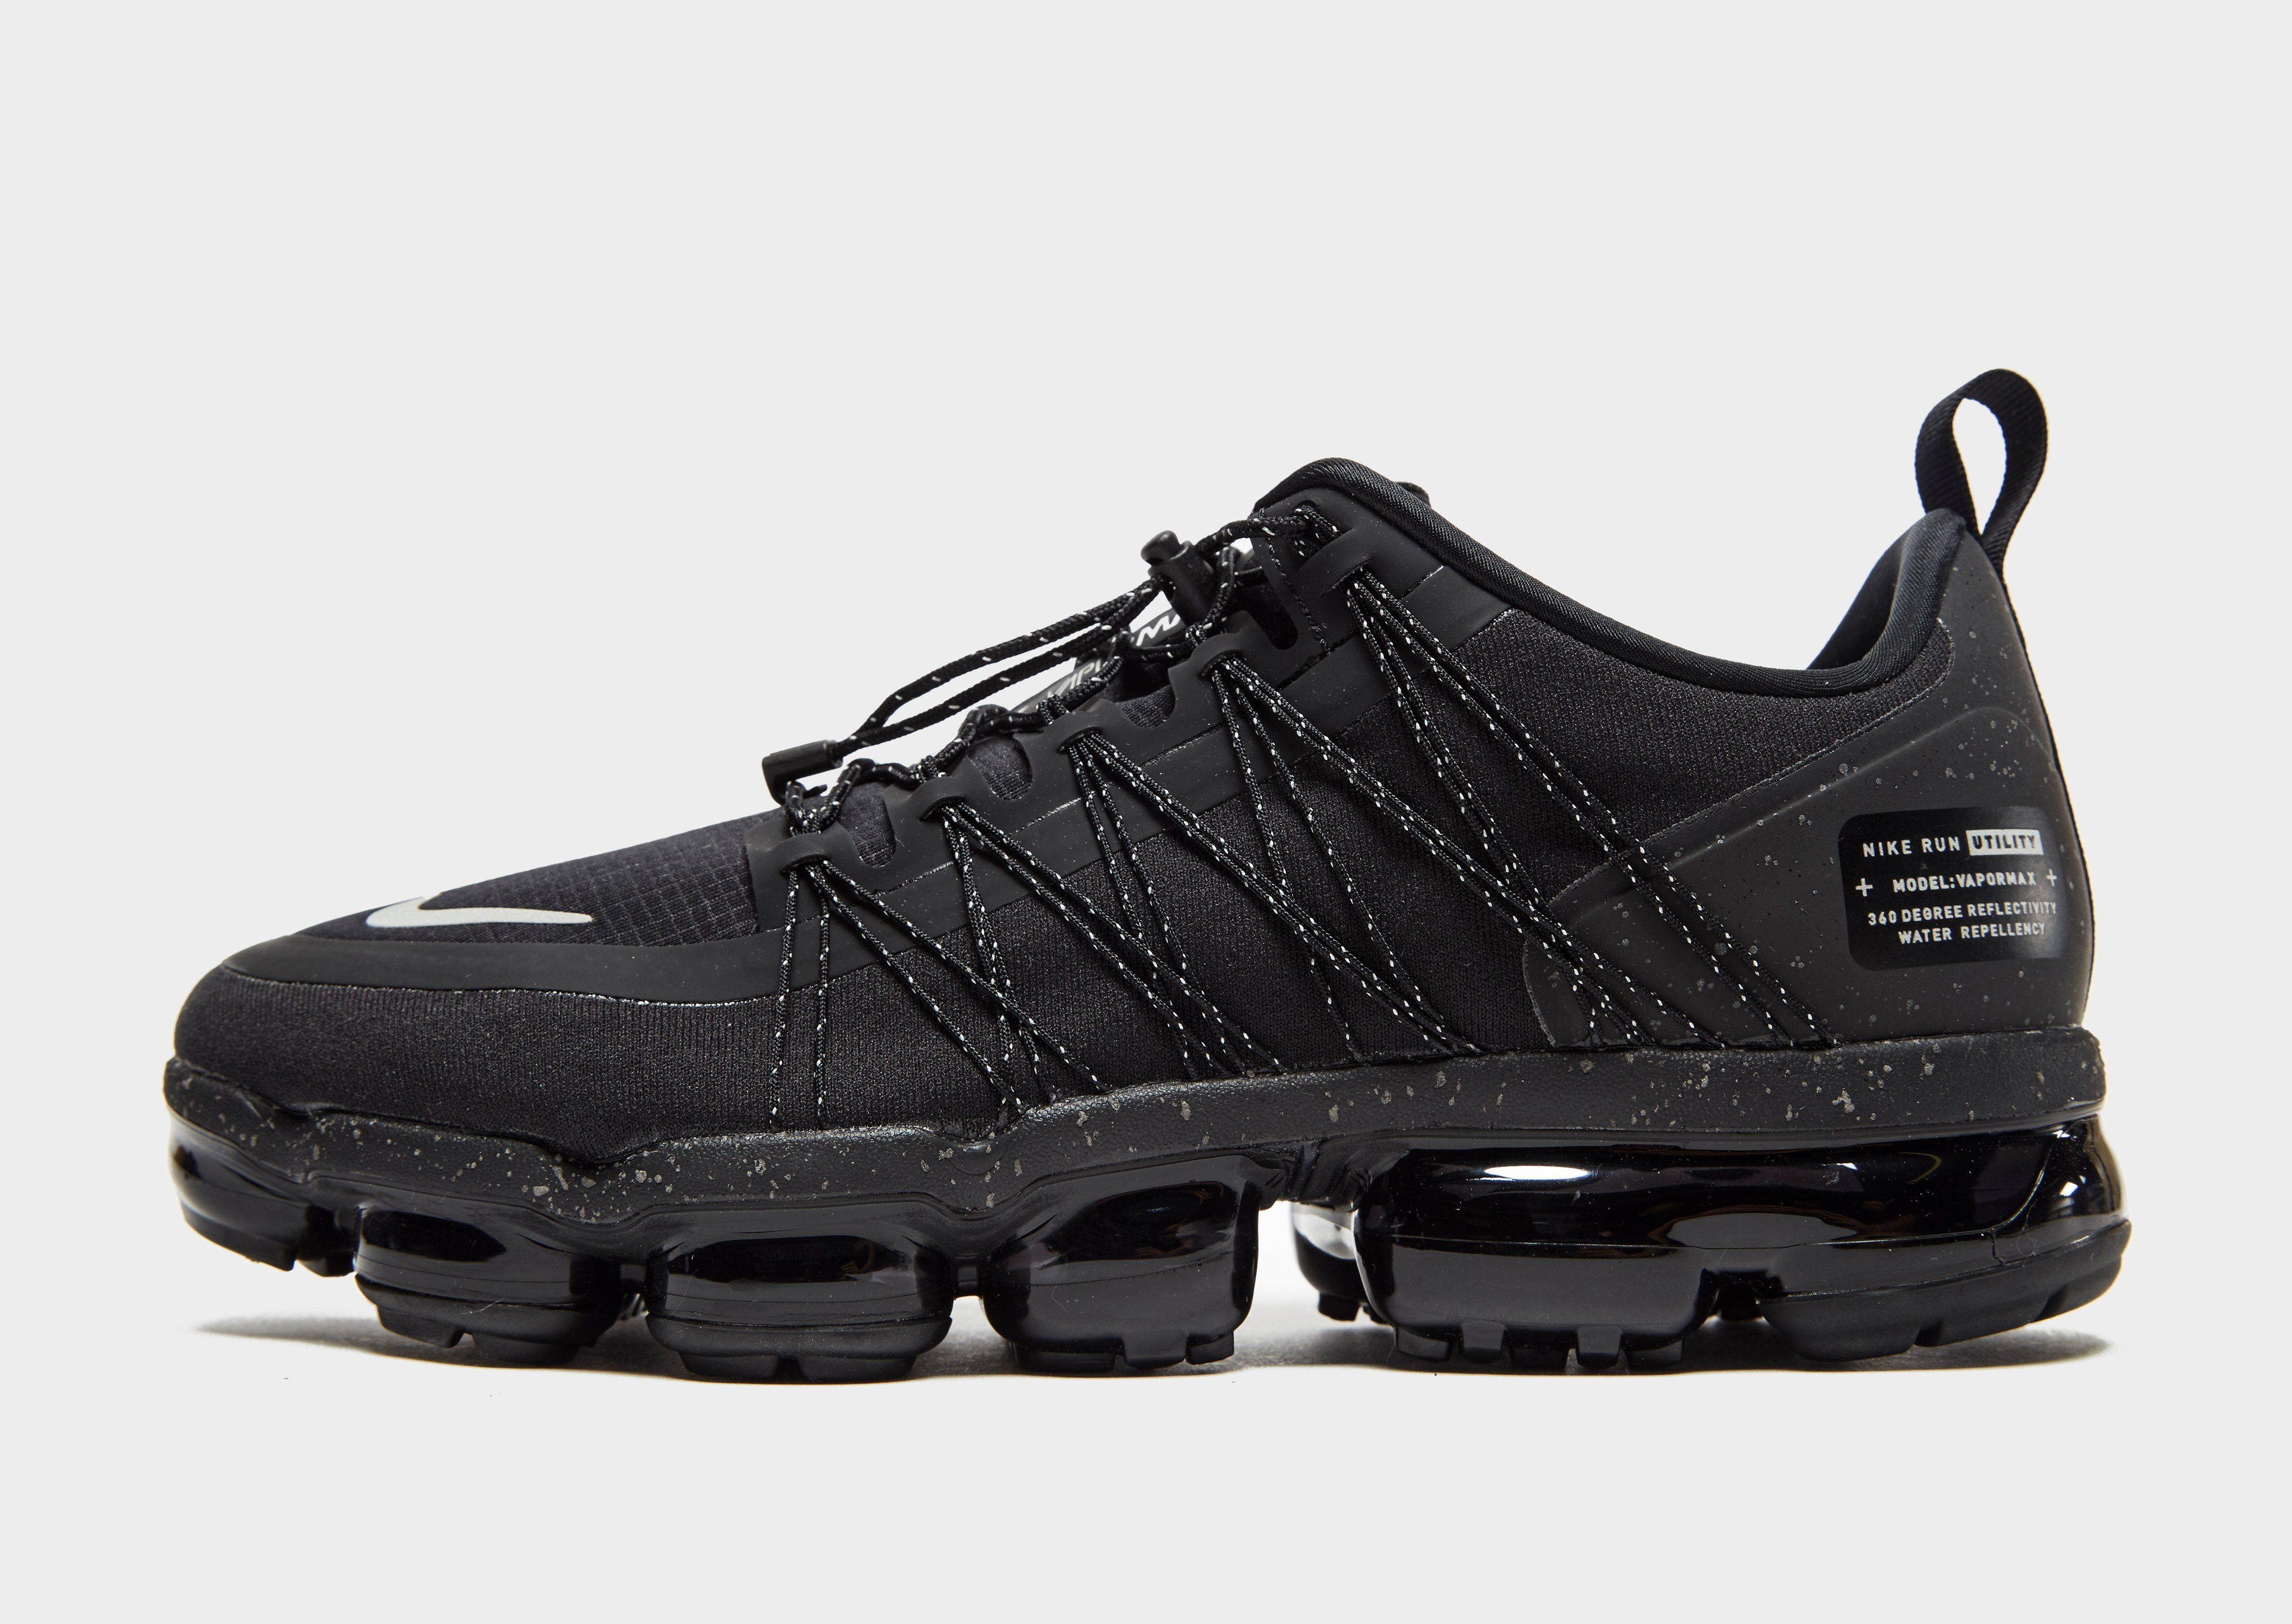 0a293dd6bf Nike Air VaporMax Run Utility | JD Sports